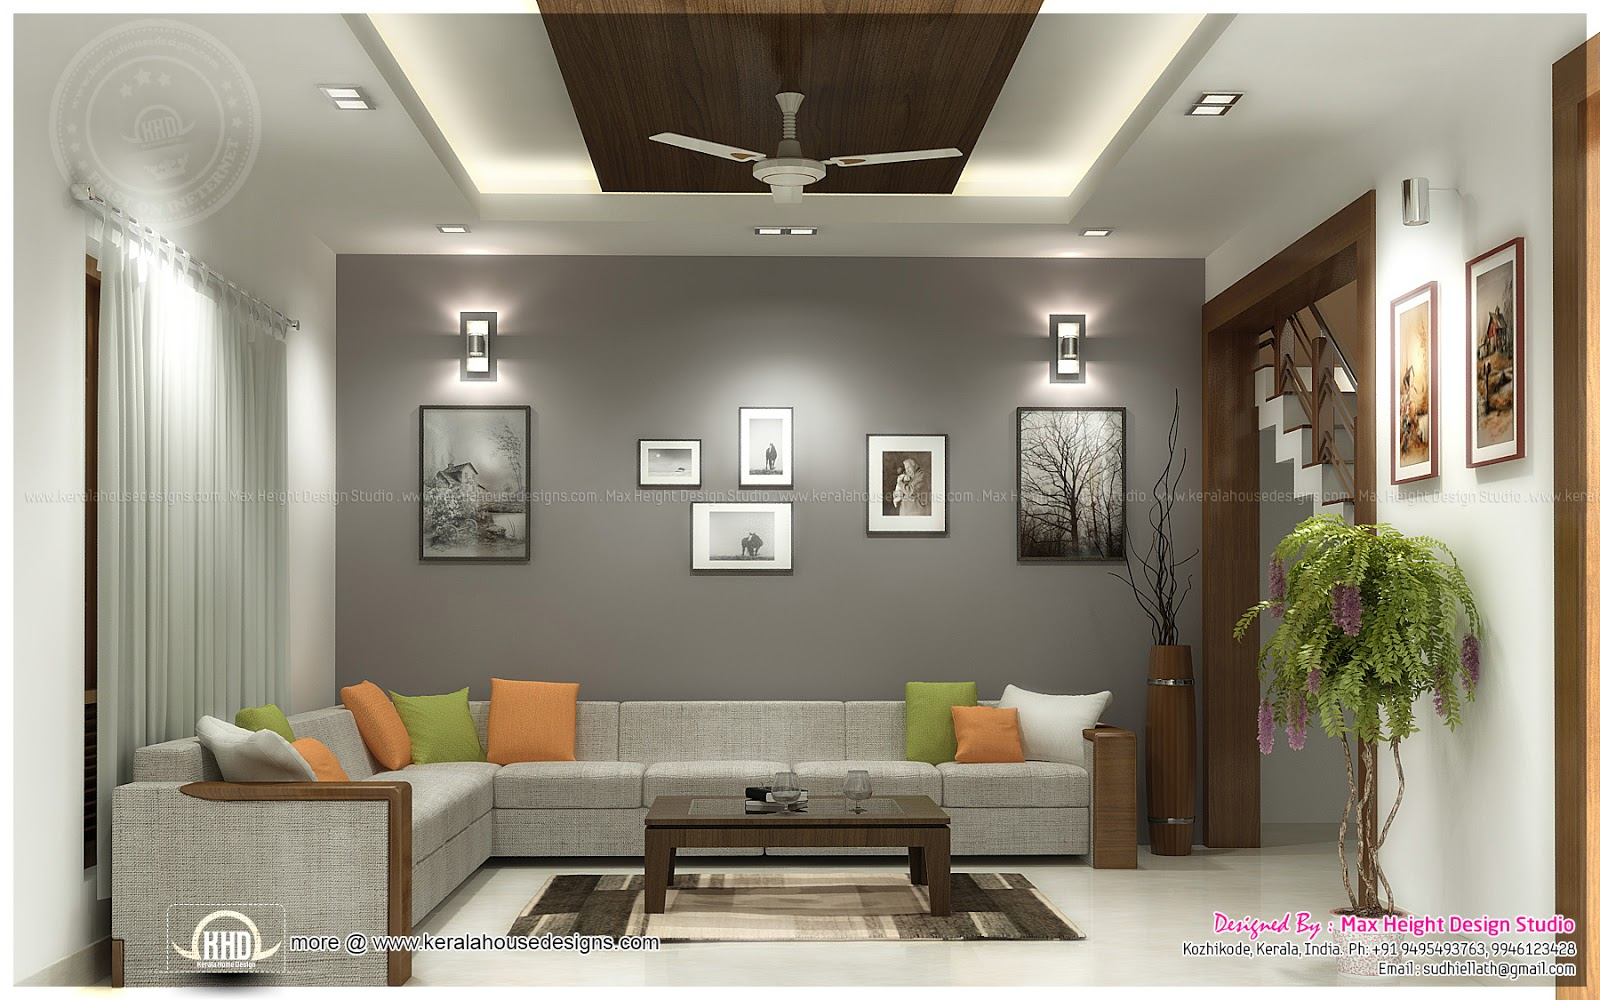 Beautiful interior ideas for home kerala home design and floor plans Beautiful home interior design ideas